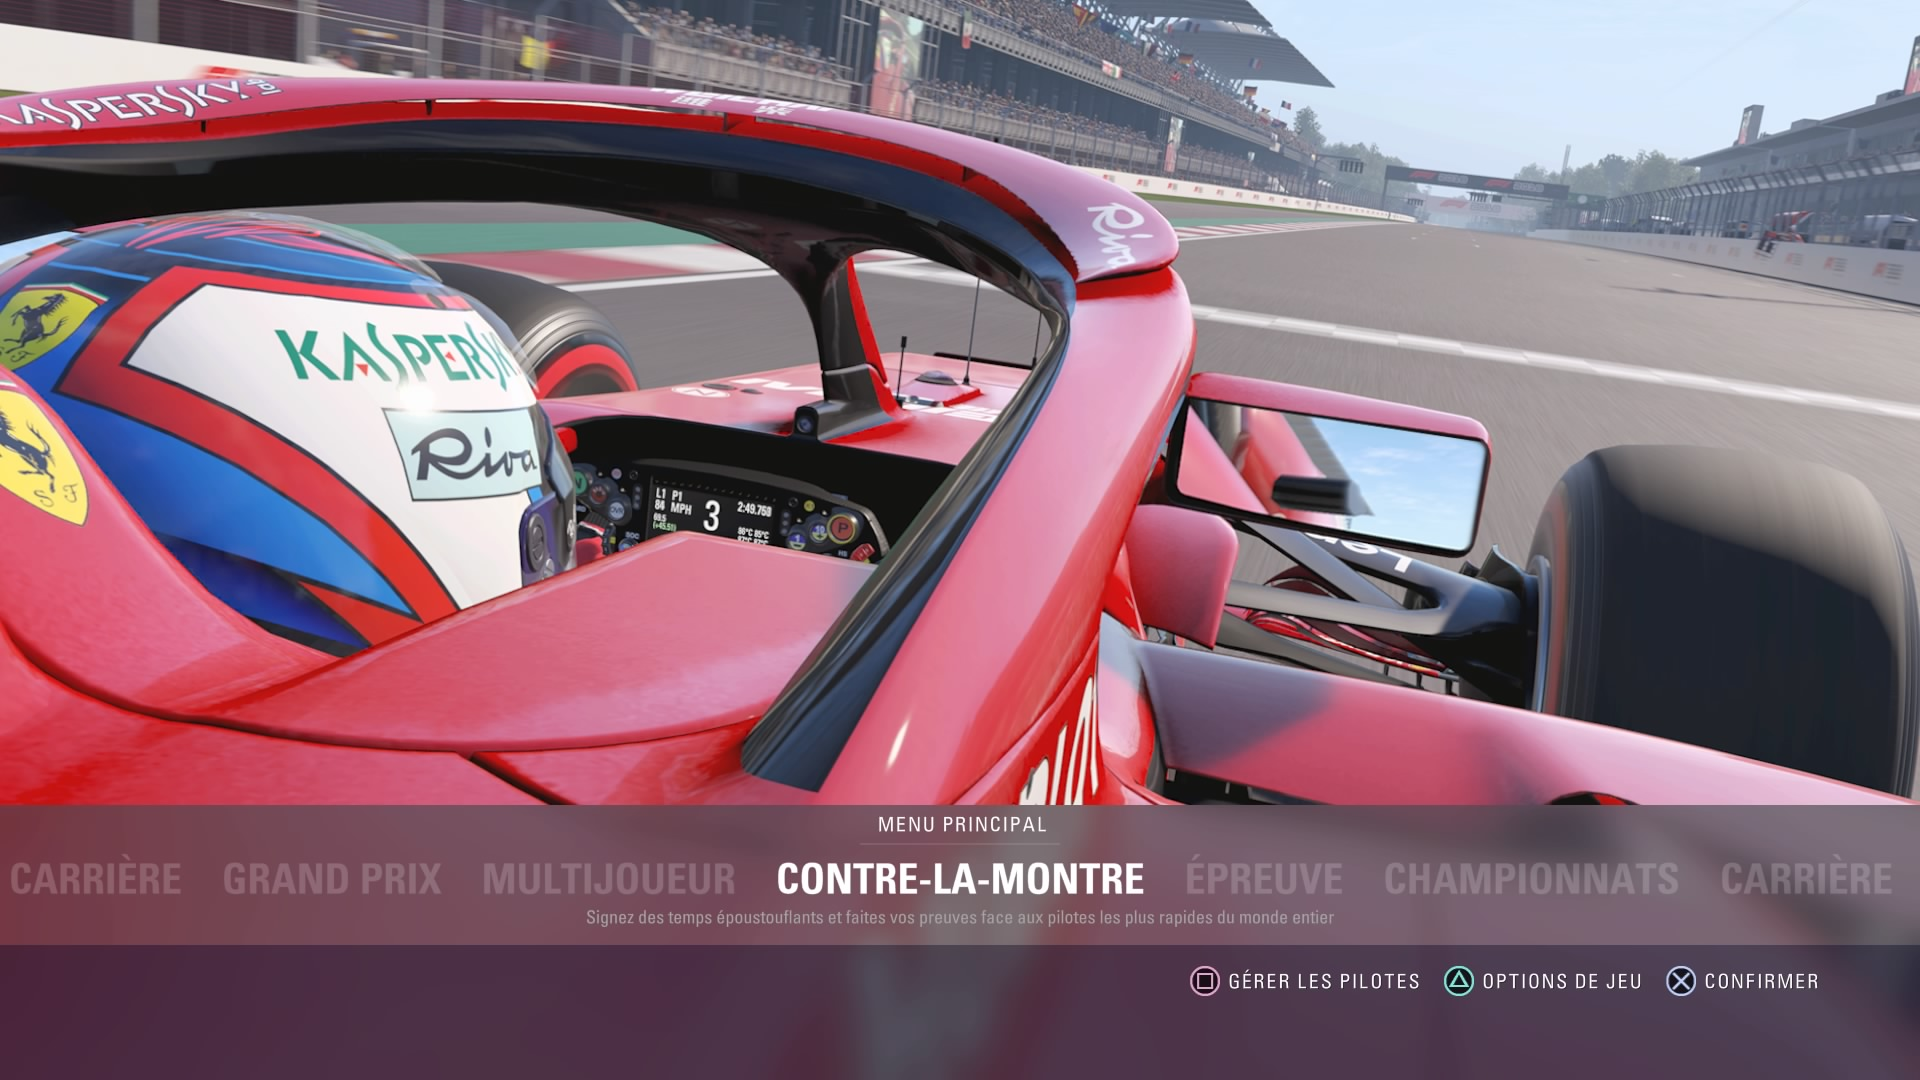 f1 2018 est il aussi bon qu 39 escompt d couvrez le test ps4 le mag auto prestige. Black Bedroom Furniture Sets. Home Design Ideas